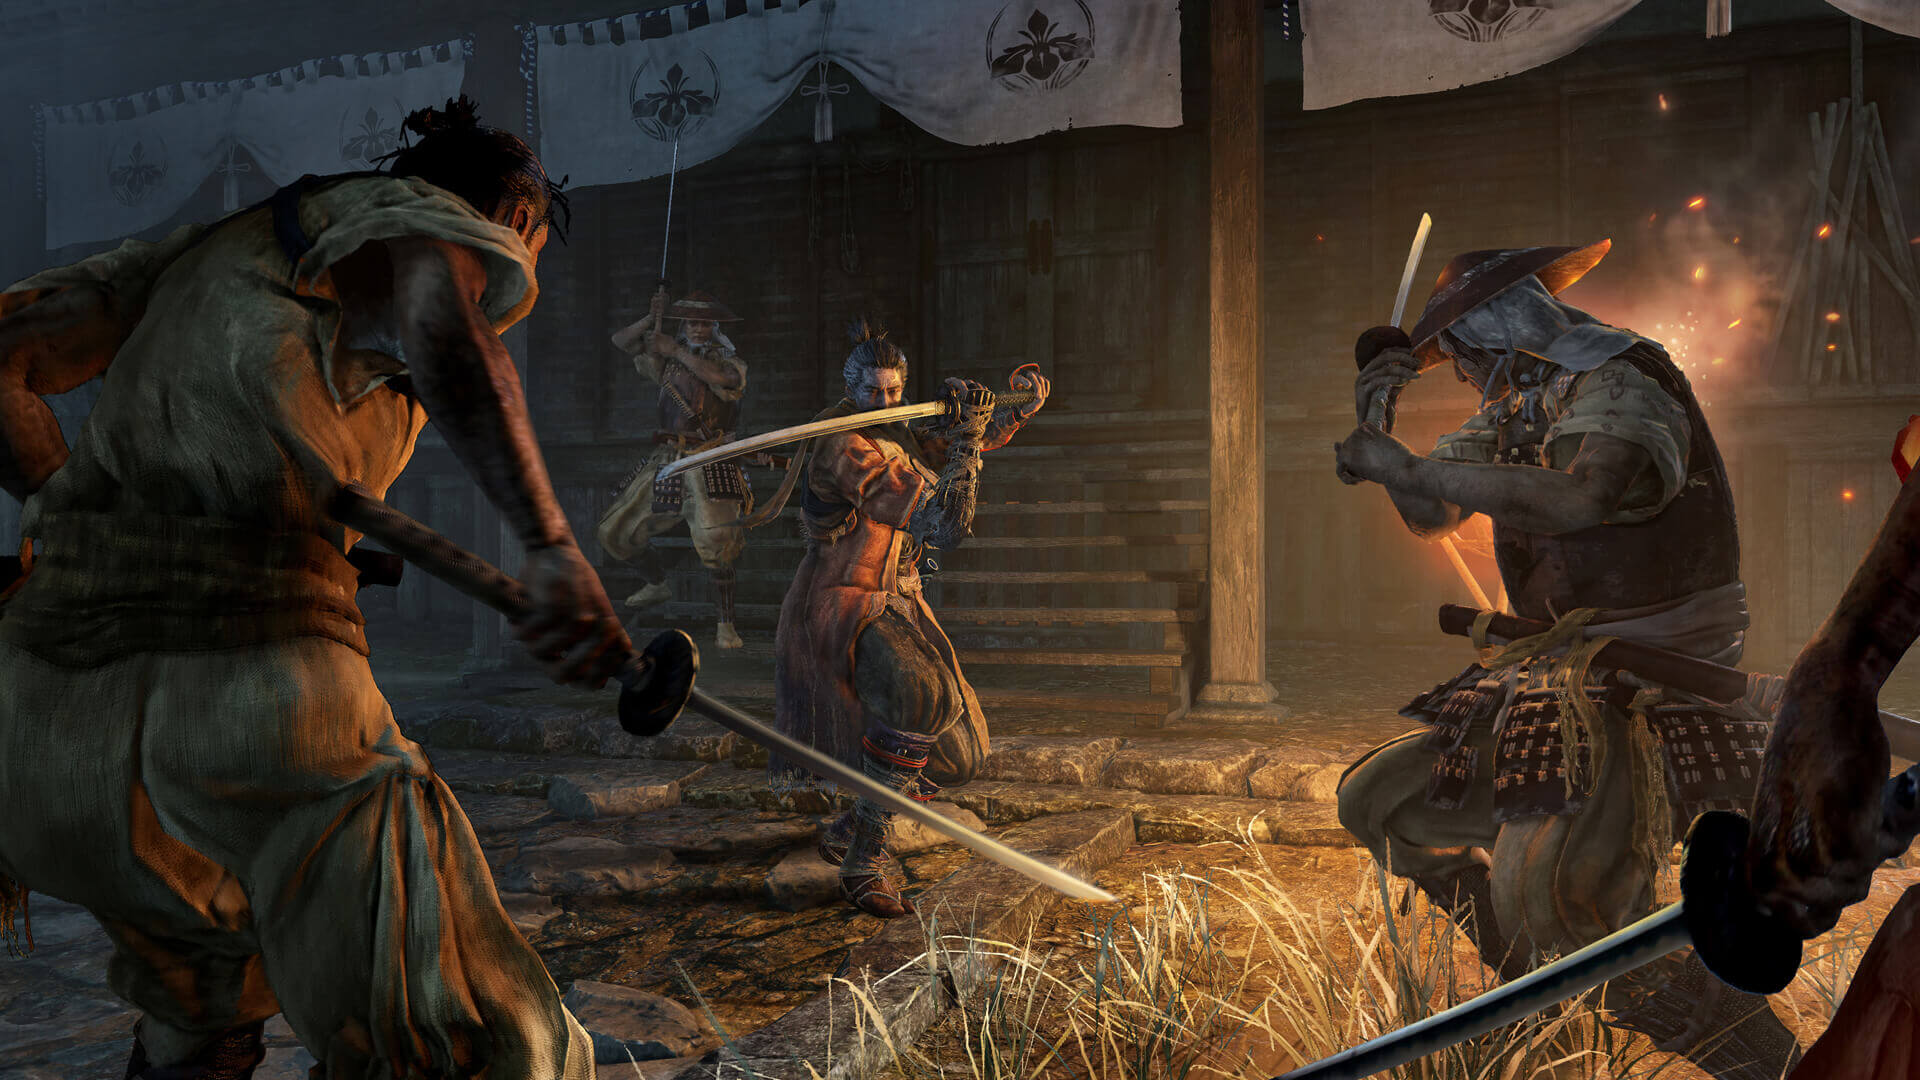 Conclusiones de Sekiro: Shadows Die Twice